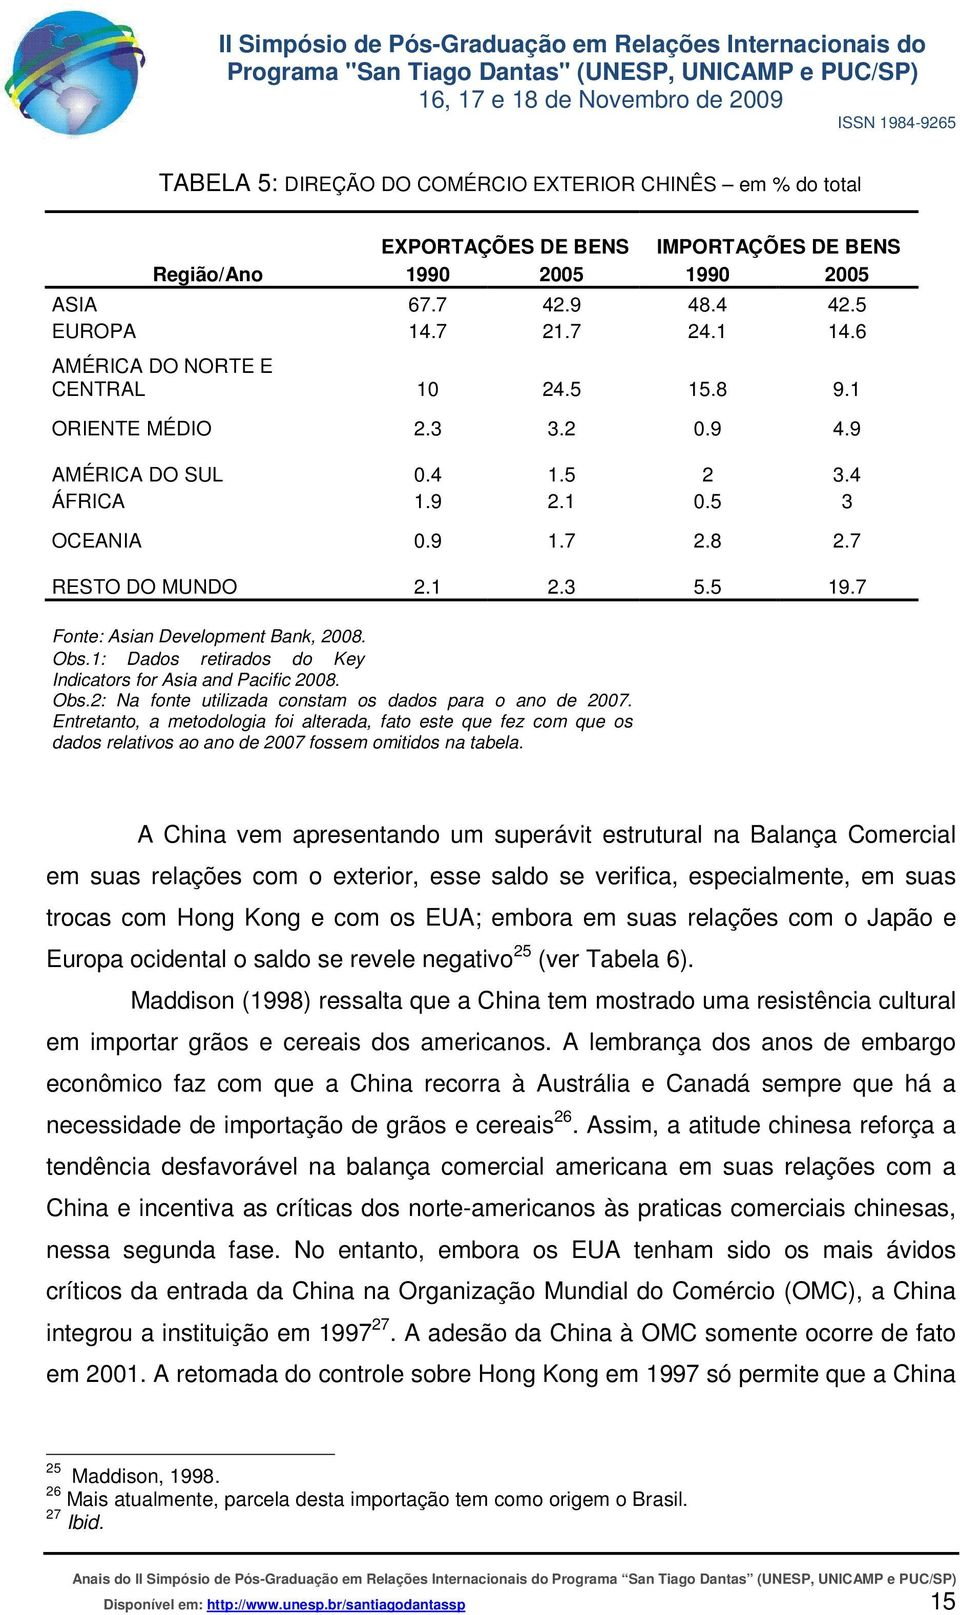 7 Fonte: Asian Development Bank, 2008. Obs.1: Dados retirados do Key Indicators for Asia and Pacific 2008. Obs.2: Na fonte utilizada constam os dados para o ano de 2007.